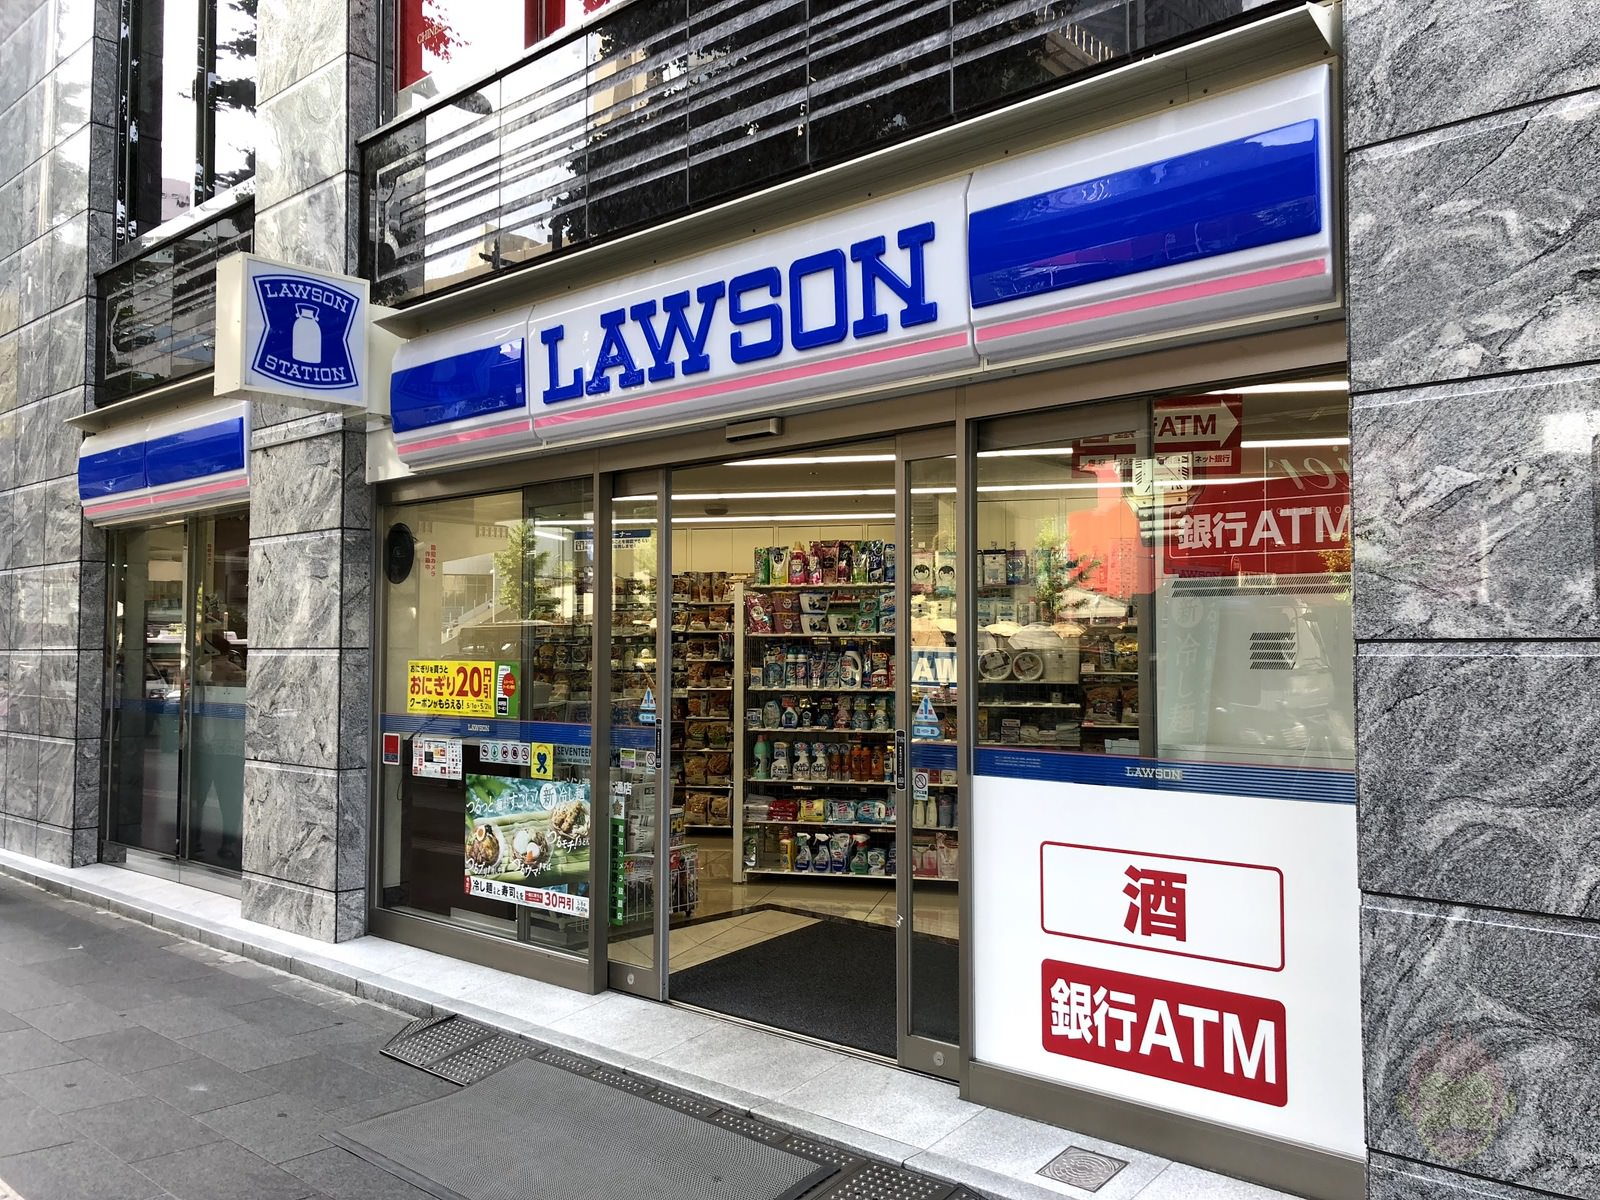 Lawson in japan 01